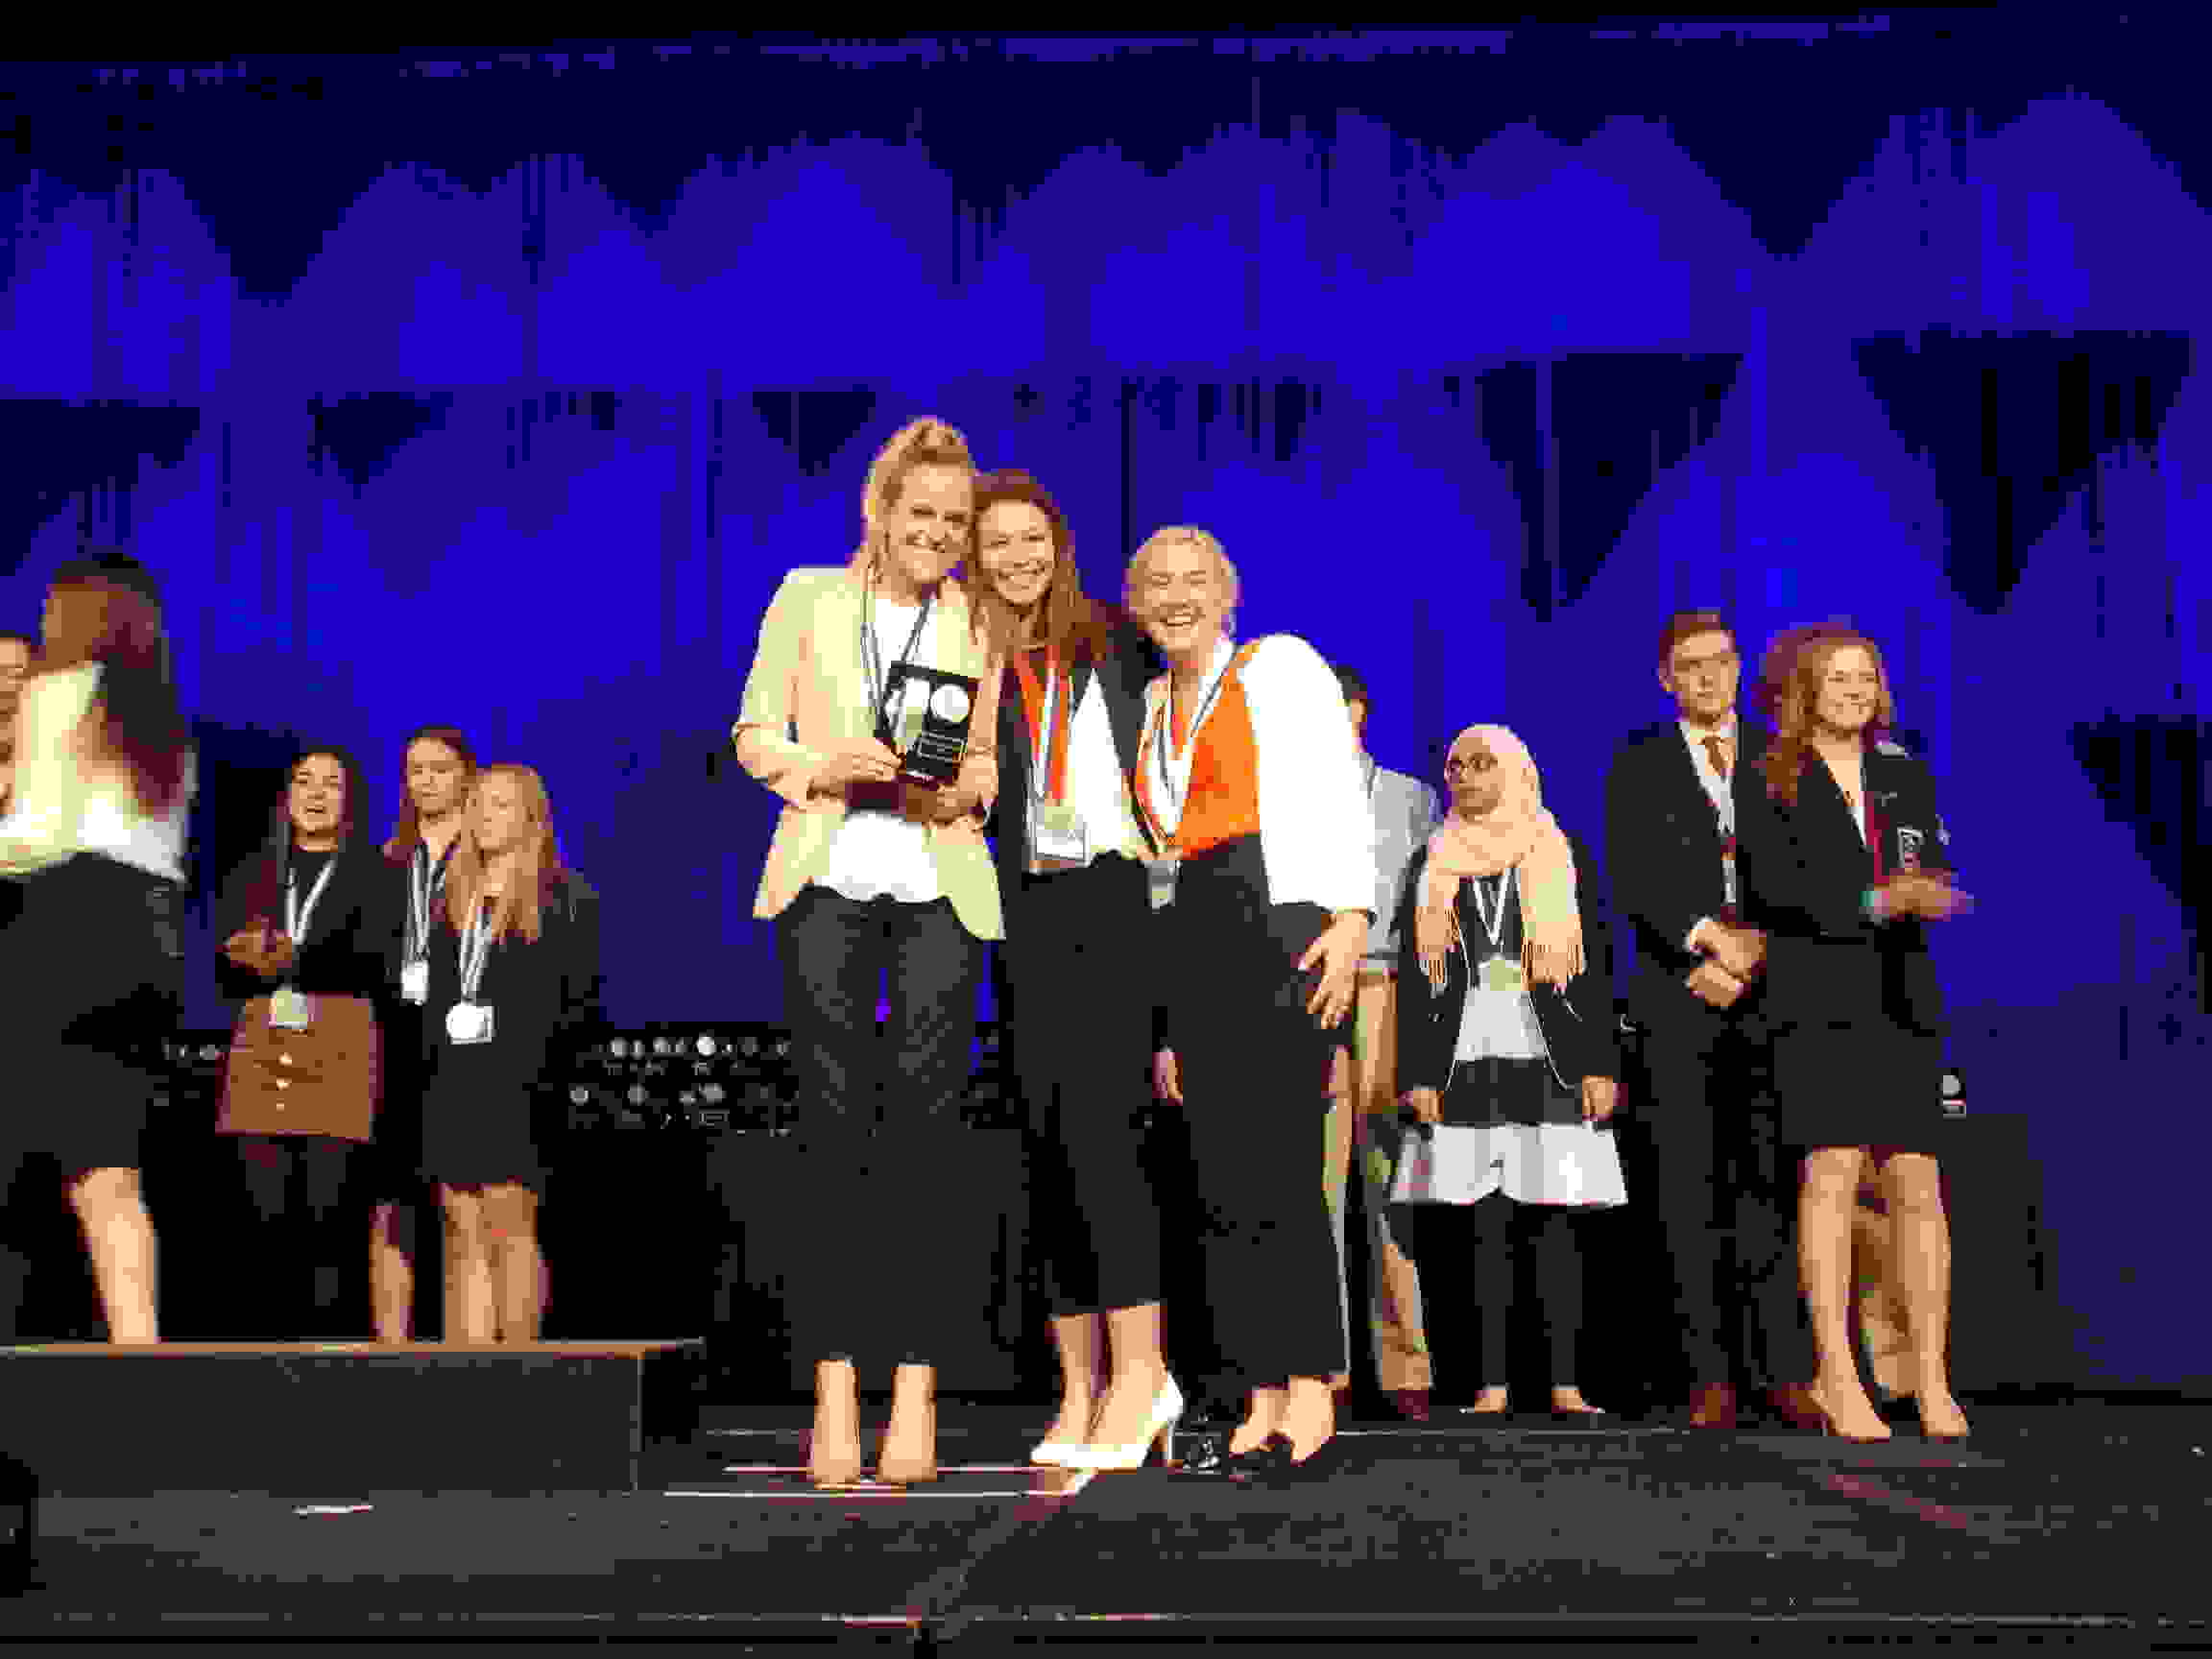 Seniors Mira Piucci, Katie Hunt and Hattie Goodwin pose with their awards at the DECA state competition.